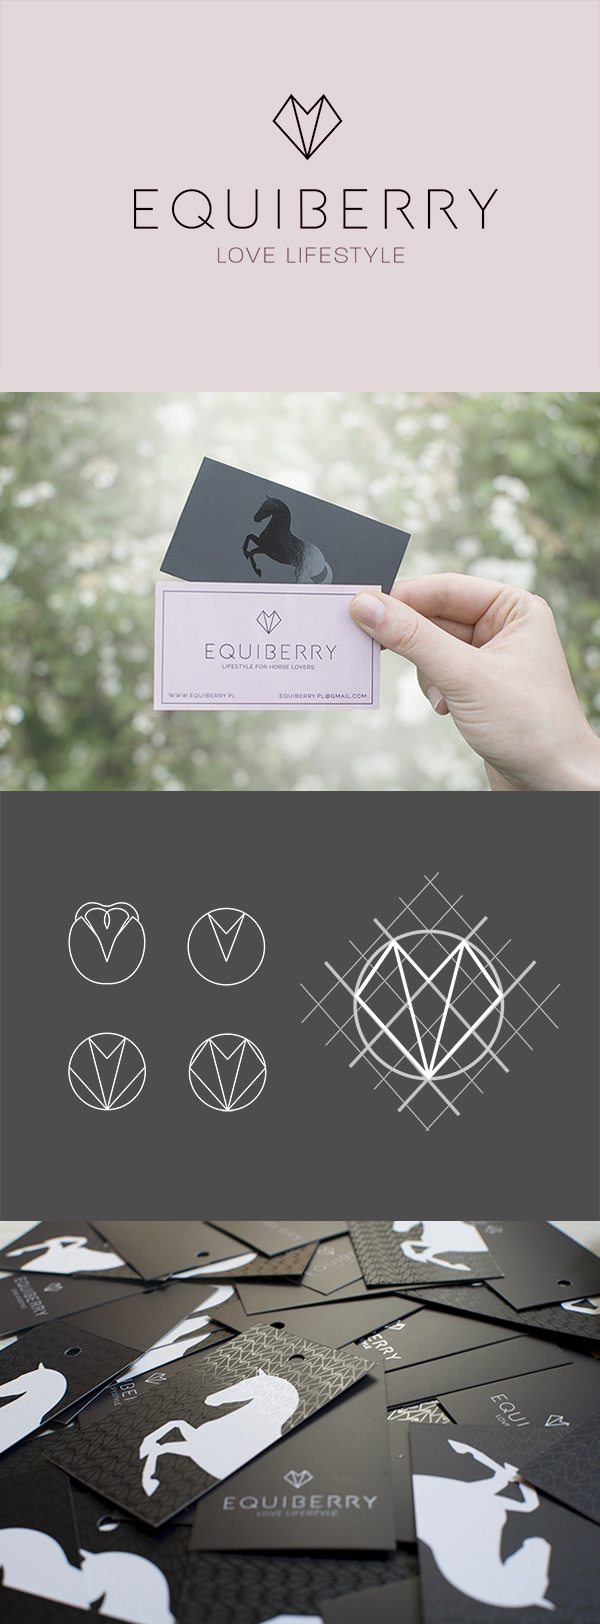 equiberry logo brand creation marka